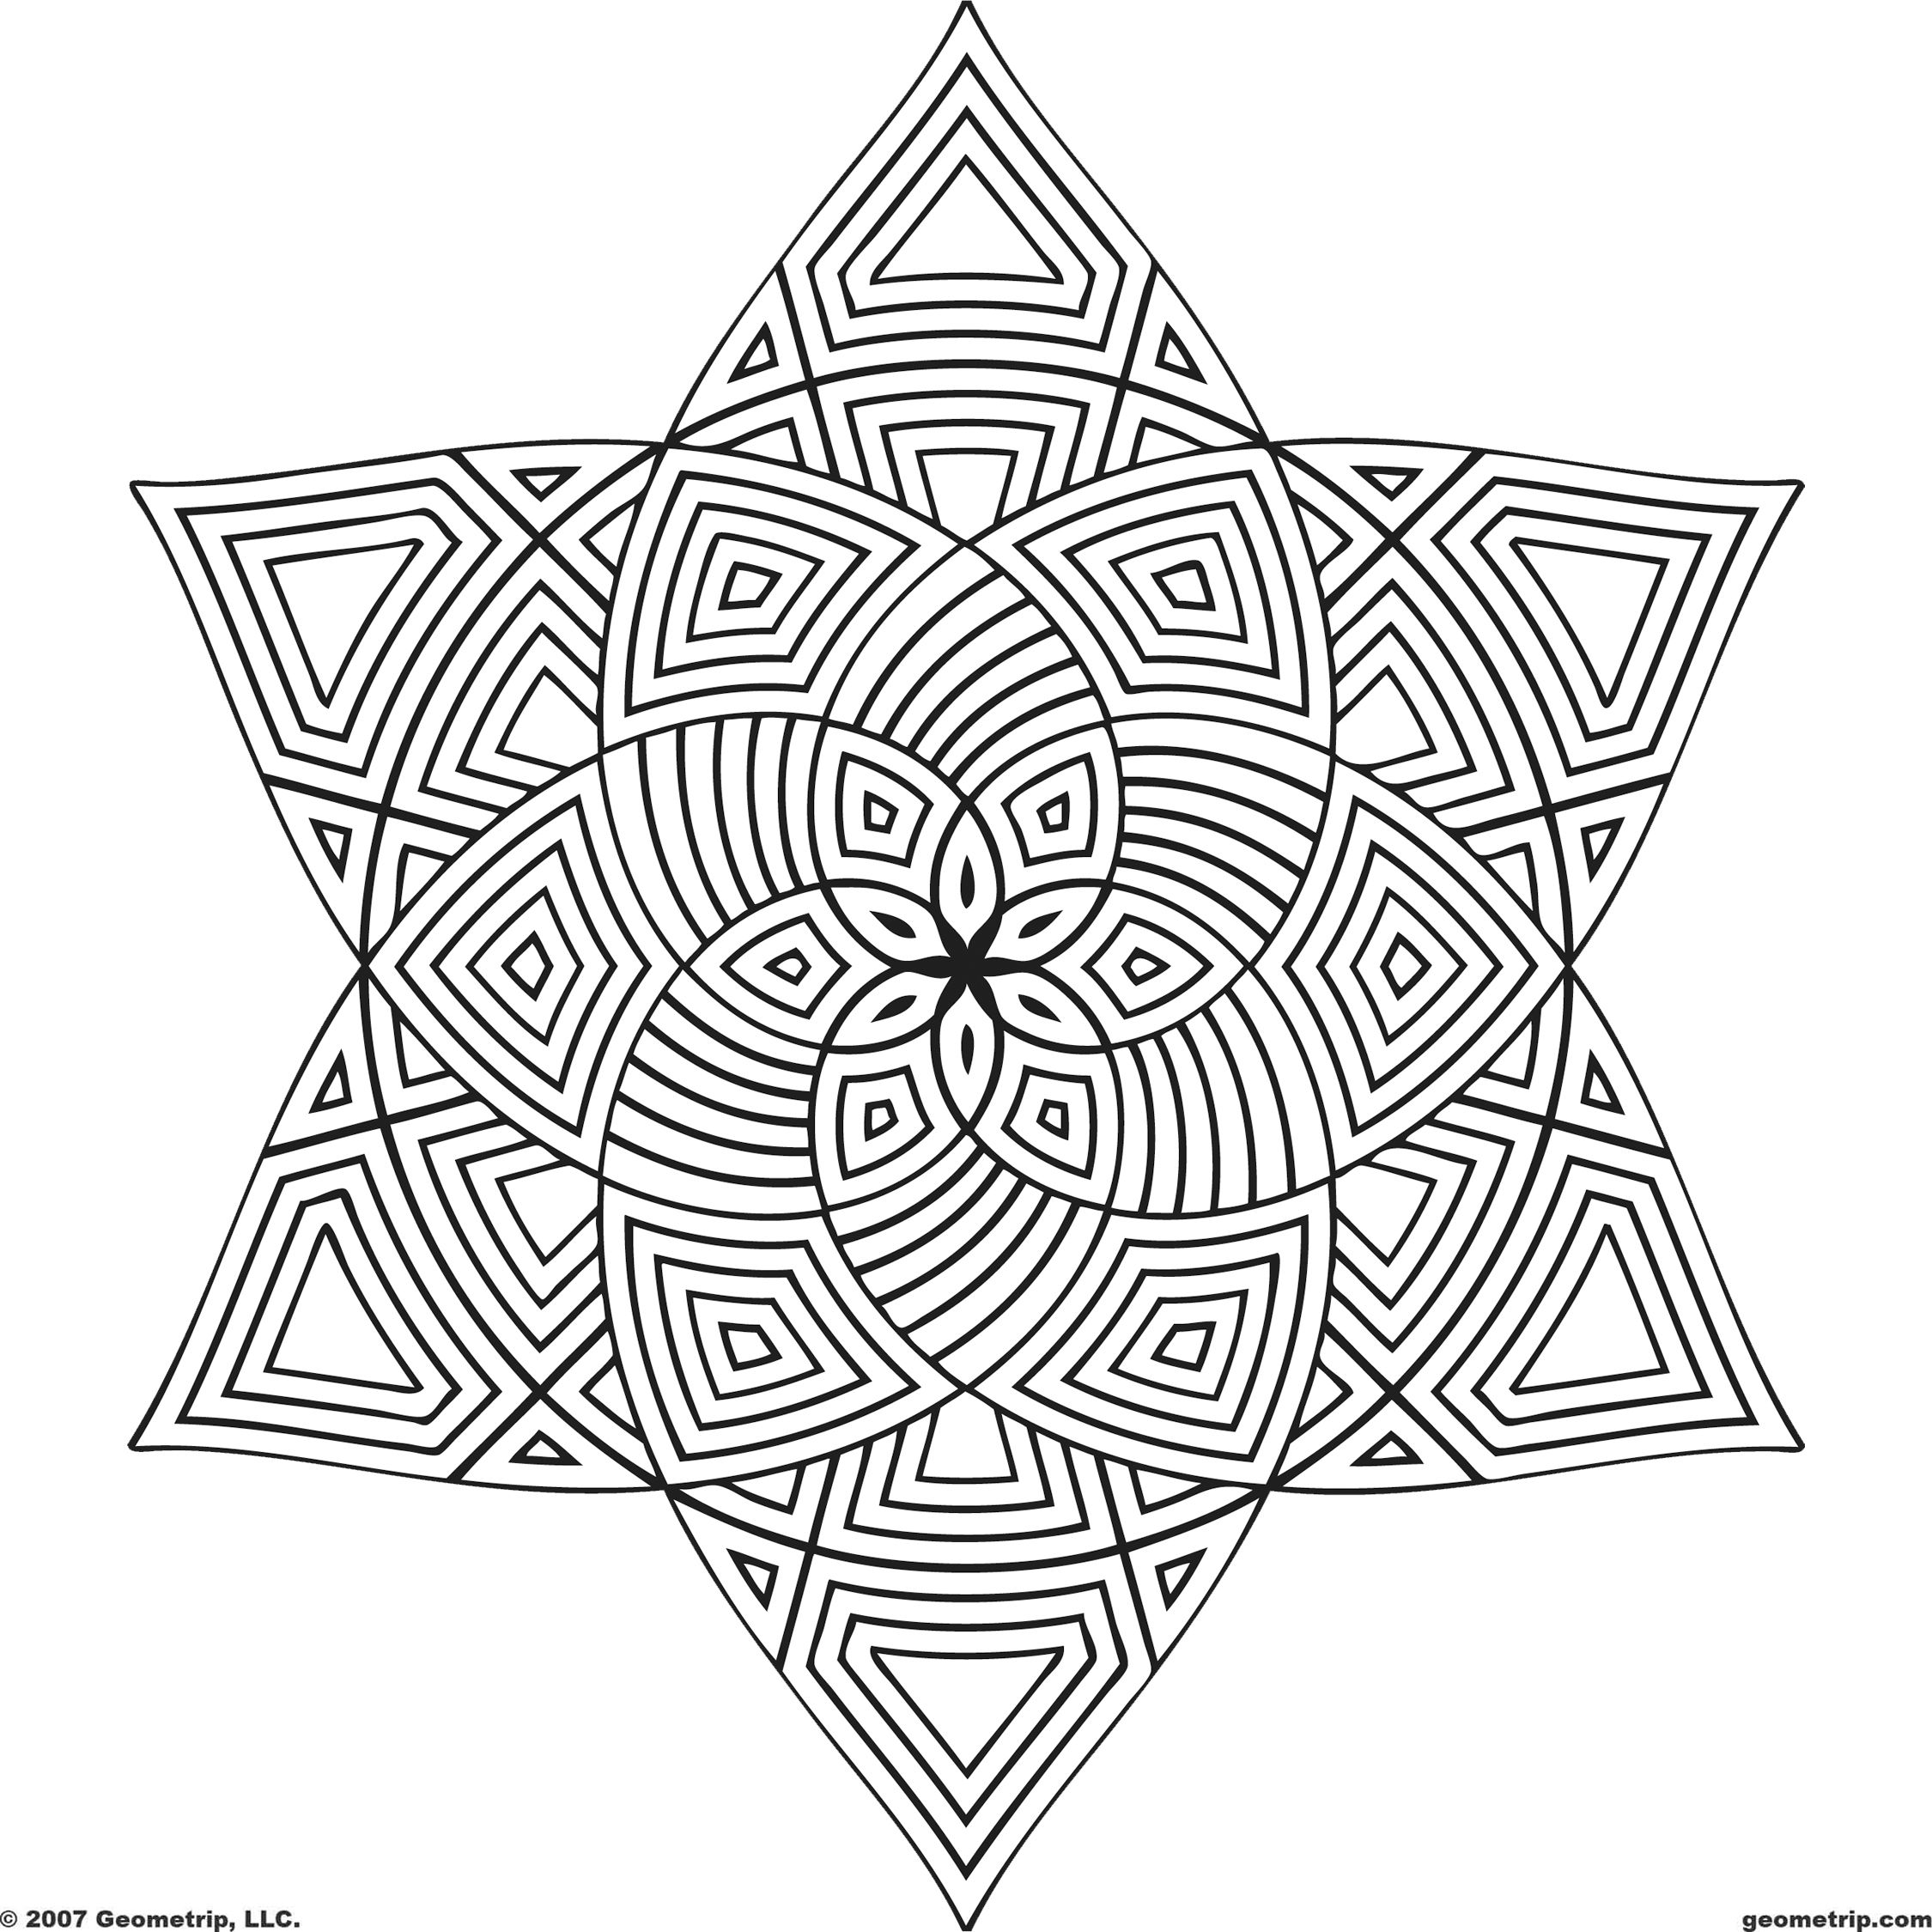 free printable coloring pages mandala designs | Free Printable Mandala Coloring Pages | Shapes: Page 1 of ...